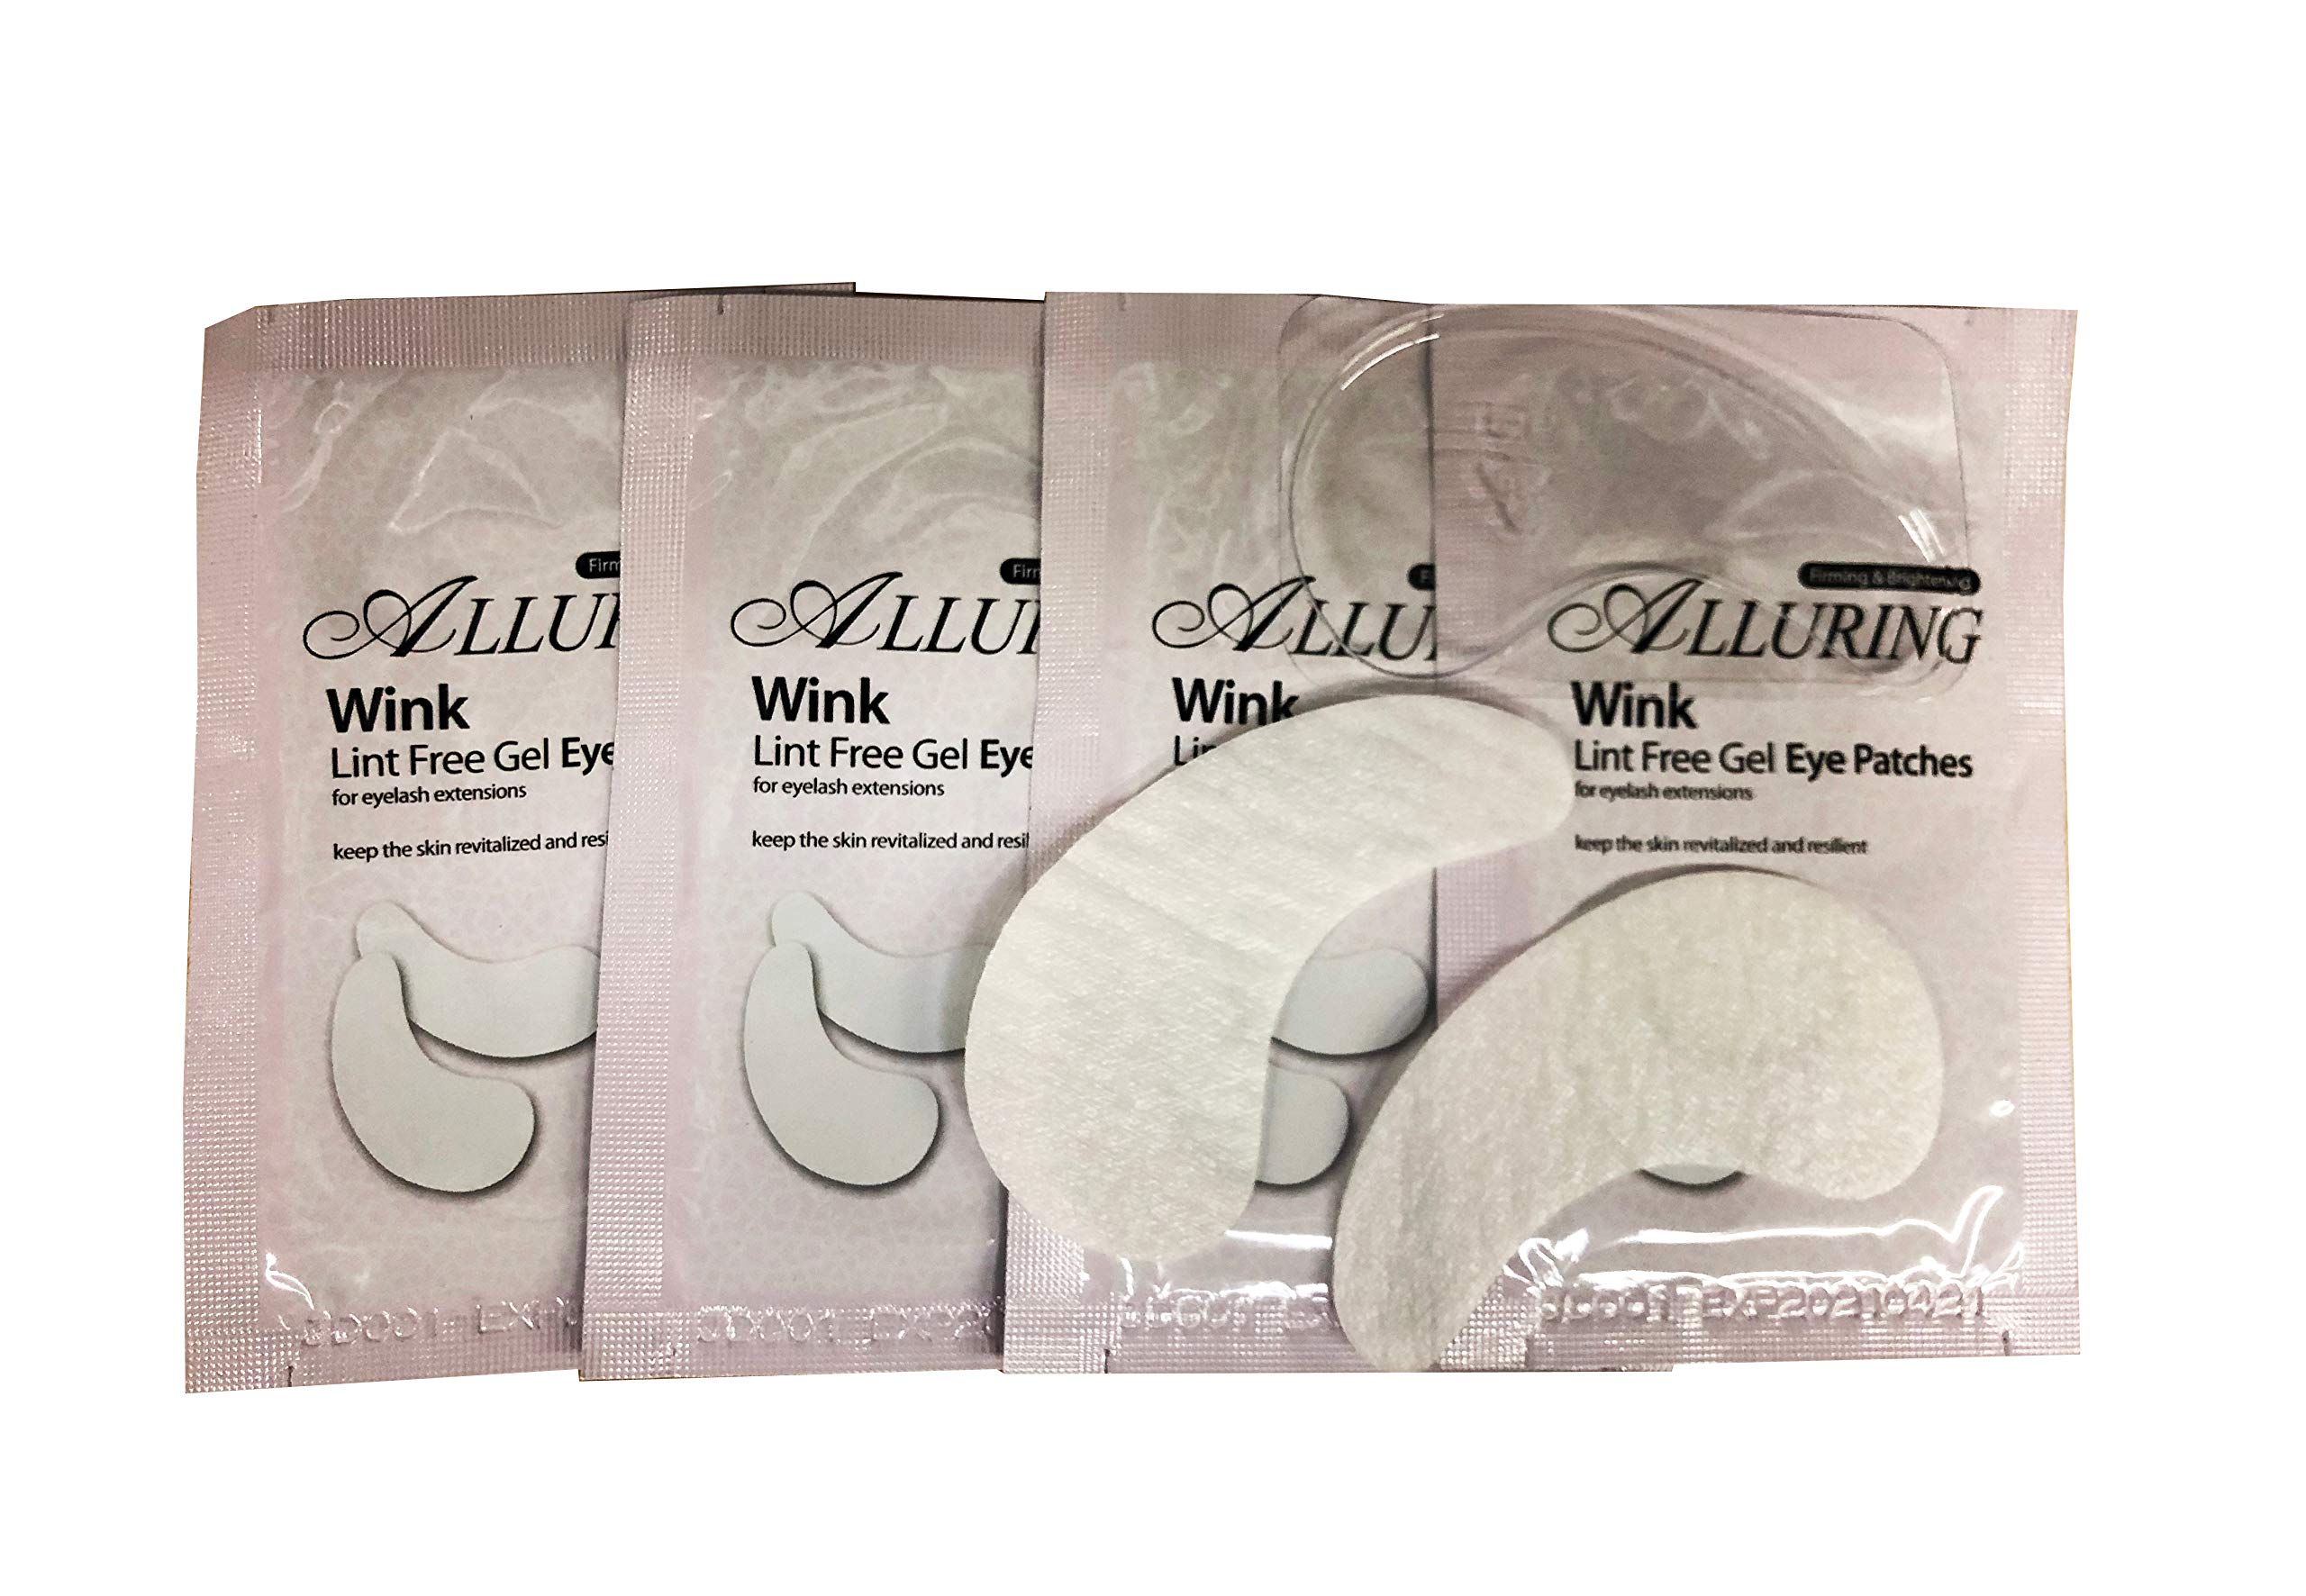 100 Pairs- Eyelash Extension Lint Free Under Eye GEL Pad Patches by eyebeautiful by Eye Beautiful